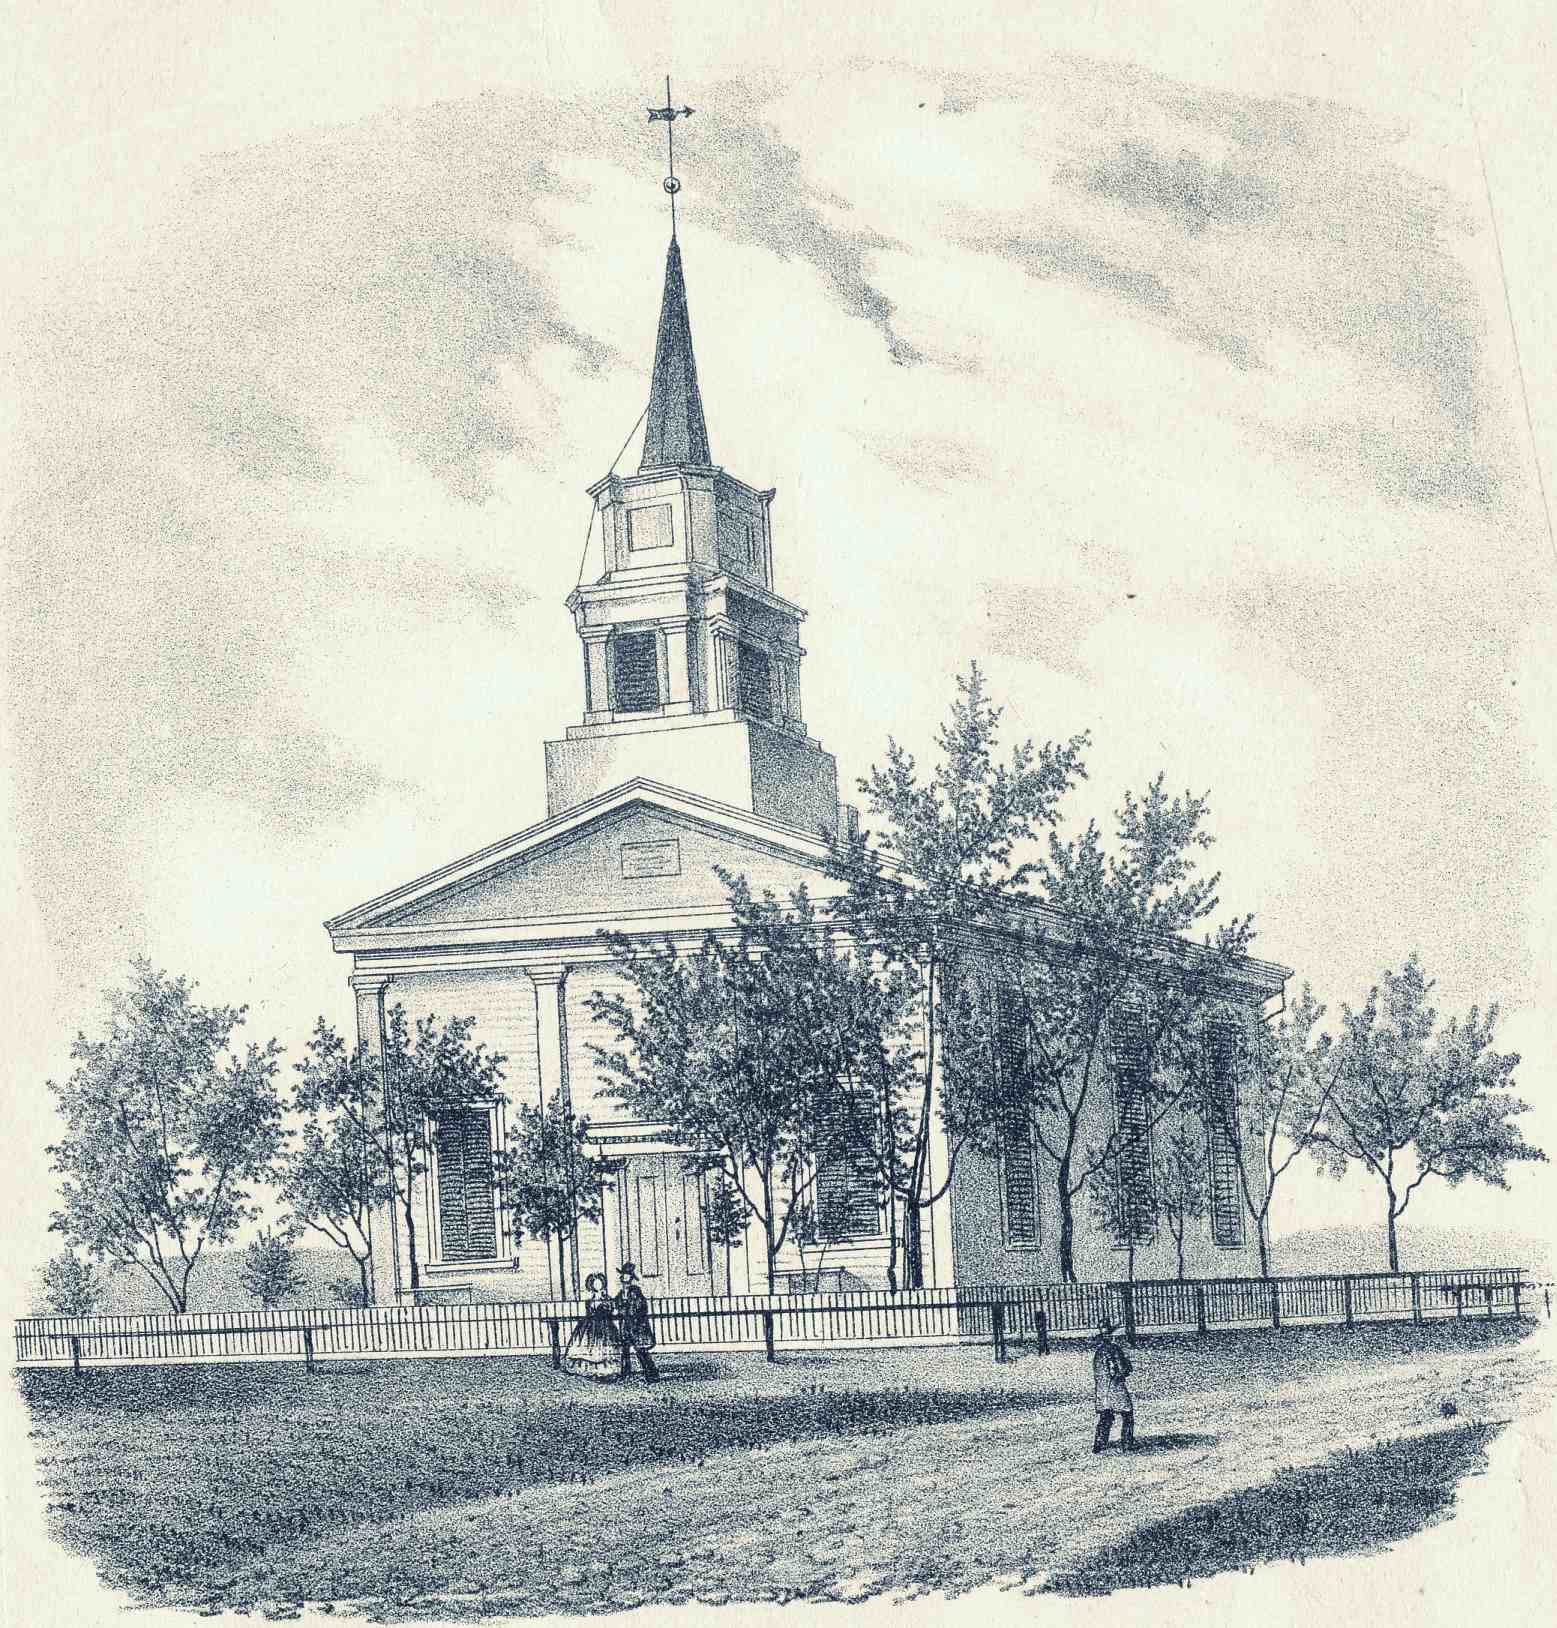 Sketch of the First Presbyterian Church of Alexandria in 1849